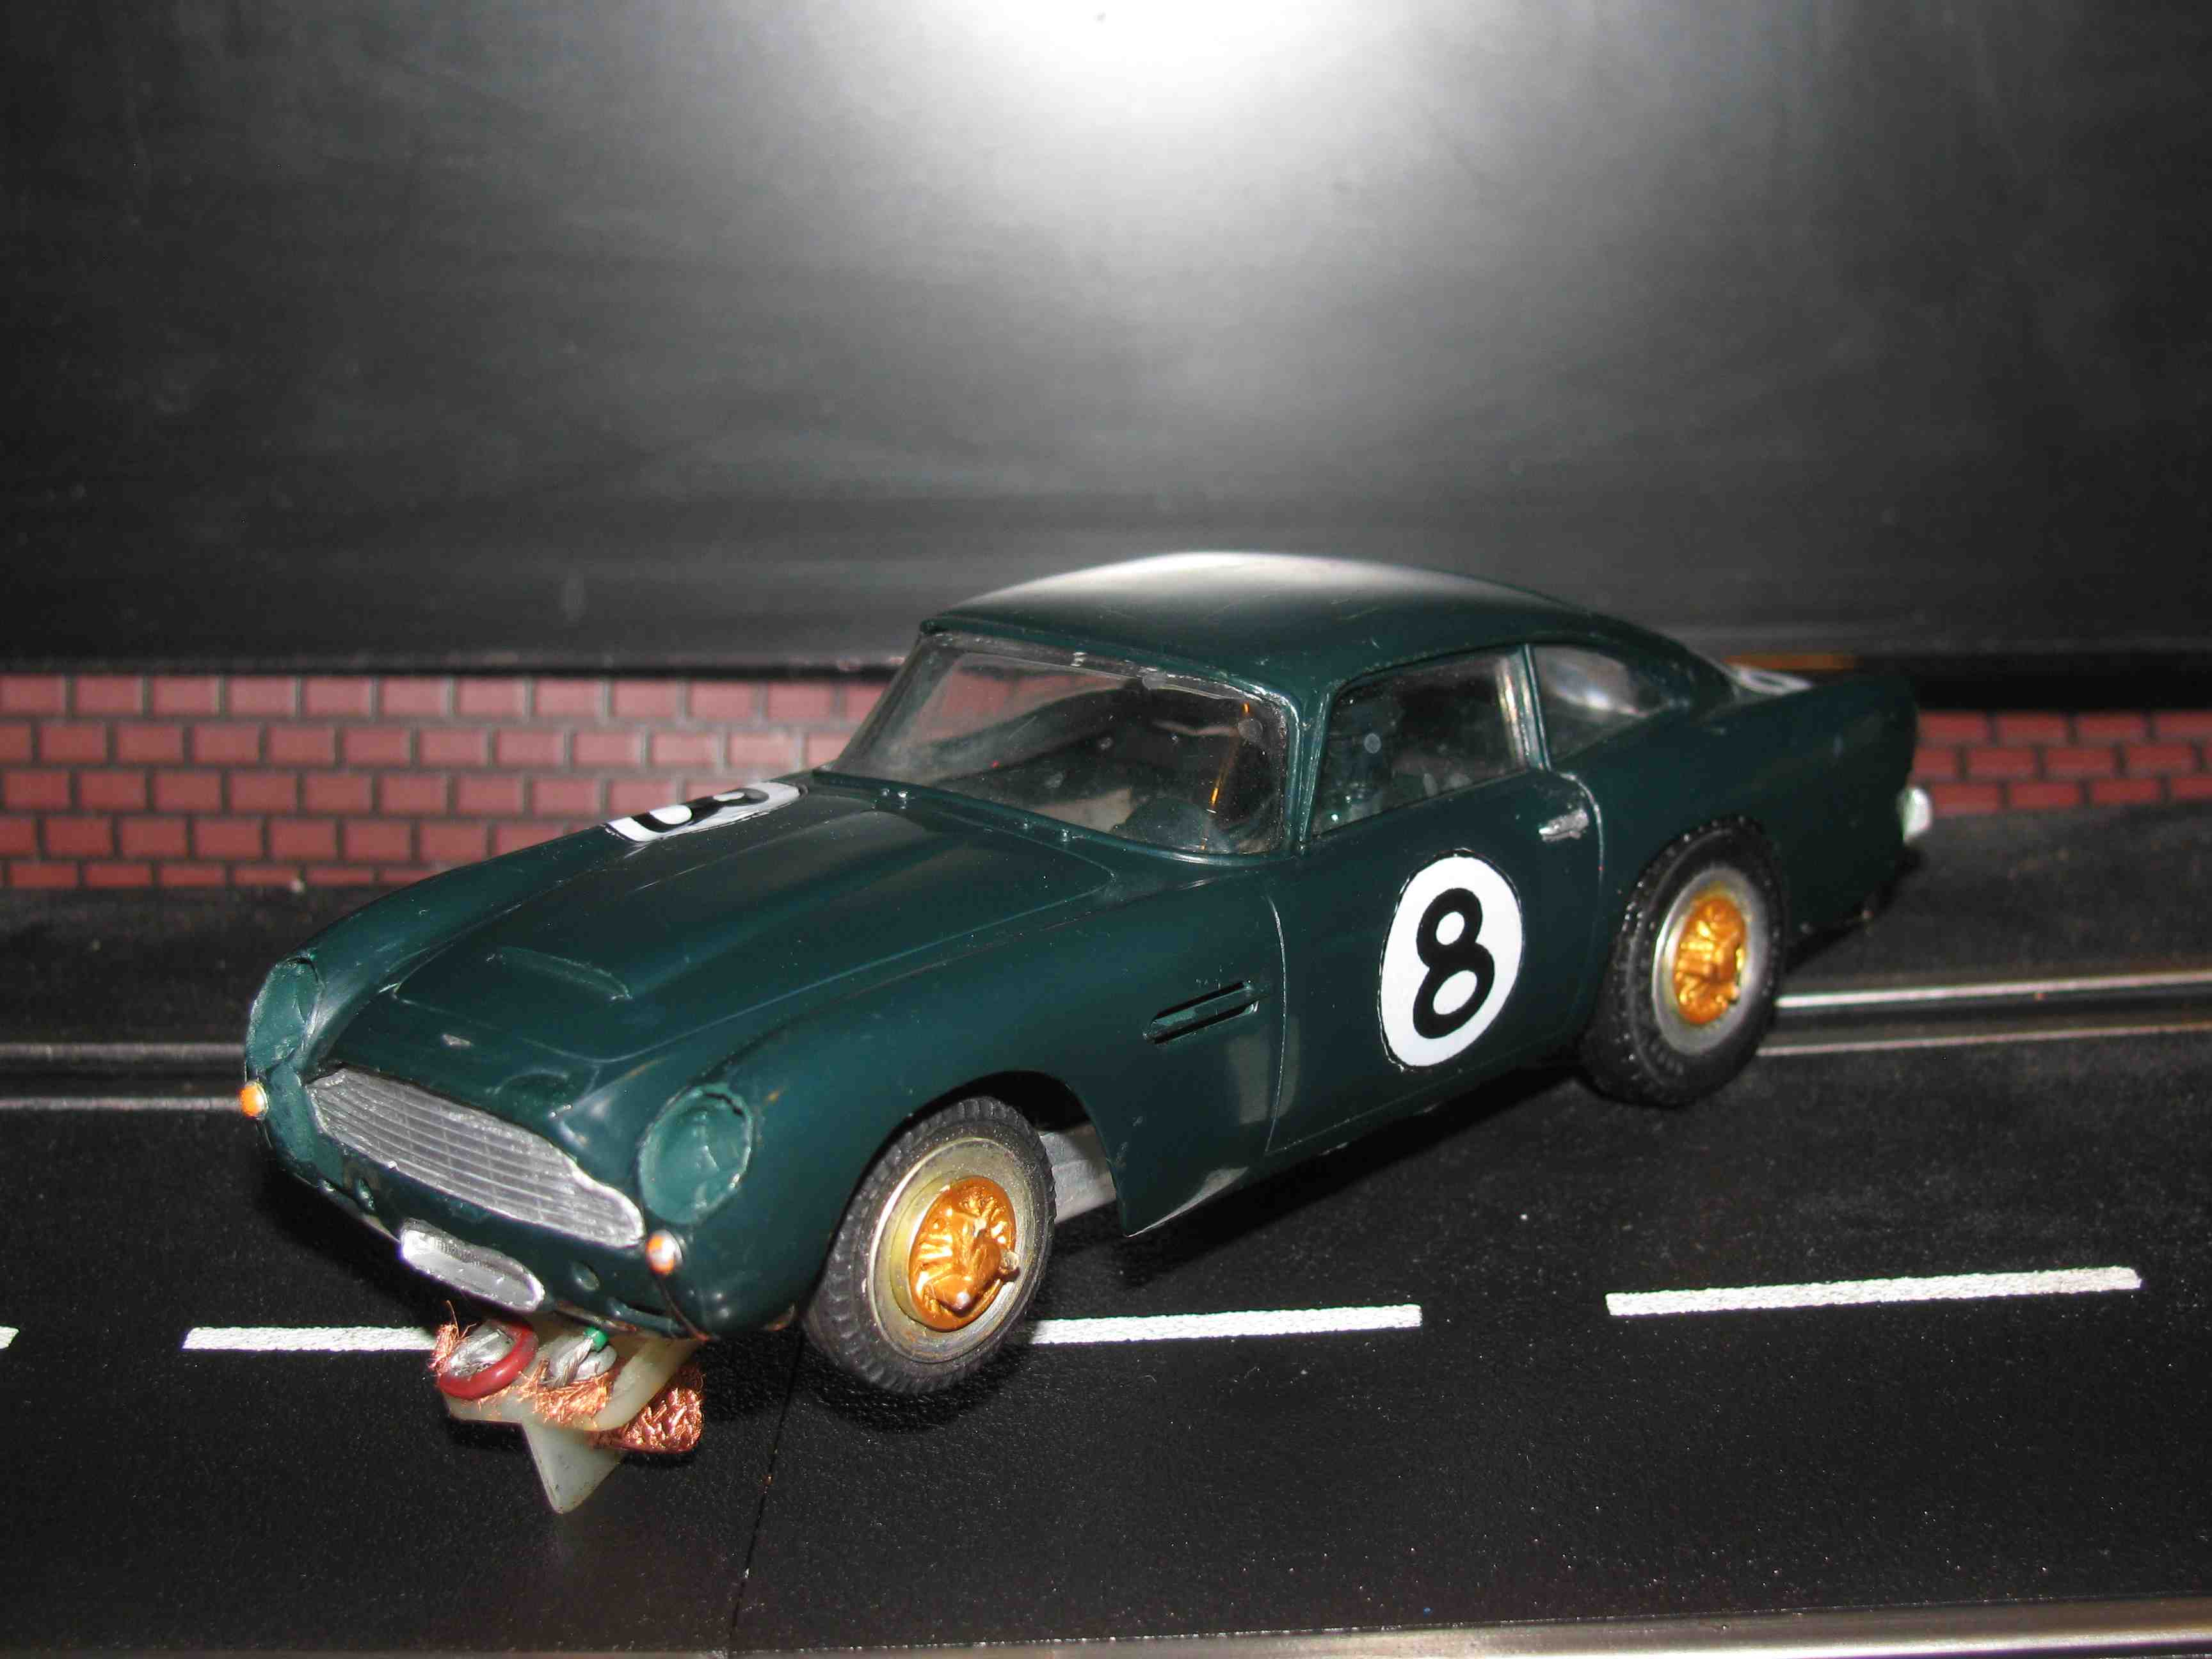 * SOLD * Vintage Revell 1964 Aston Martin DB5 Slot Car 1/32 Scale in Green